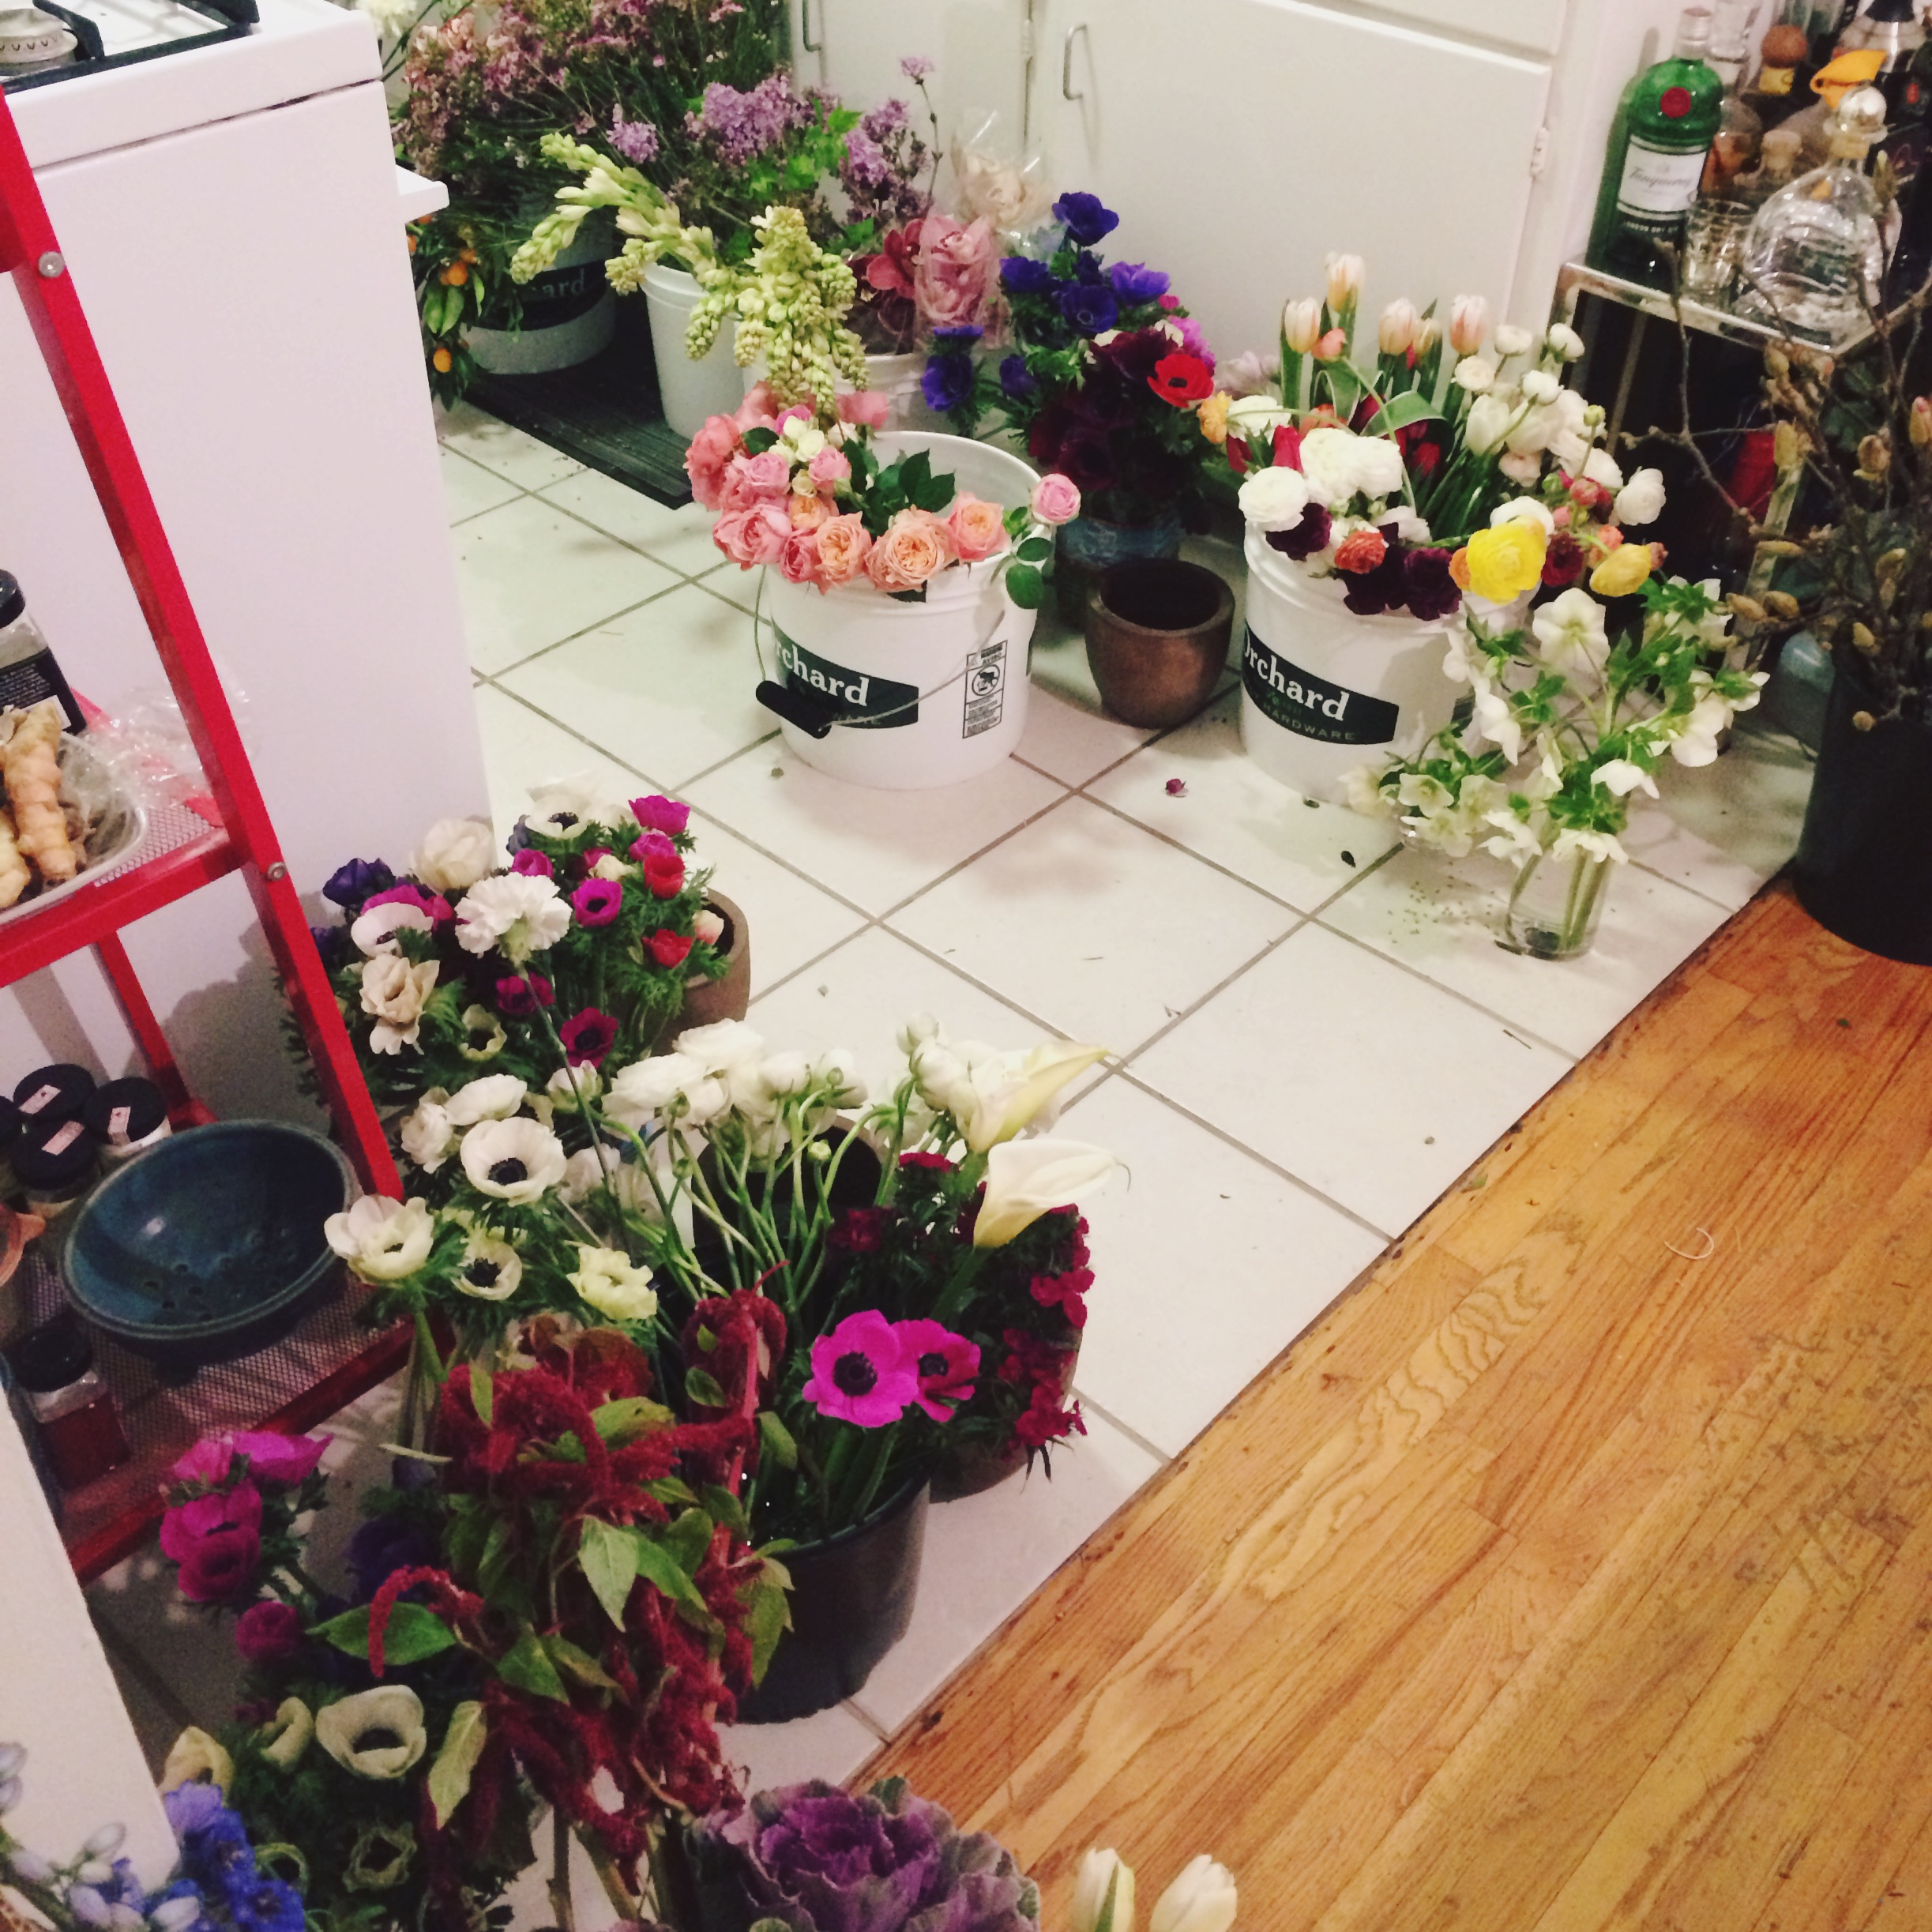 omg flowers have taken over our kitchen (and dining room and living room)  #canyousmellwhatimcookingtonight #therockshoutout